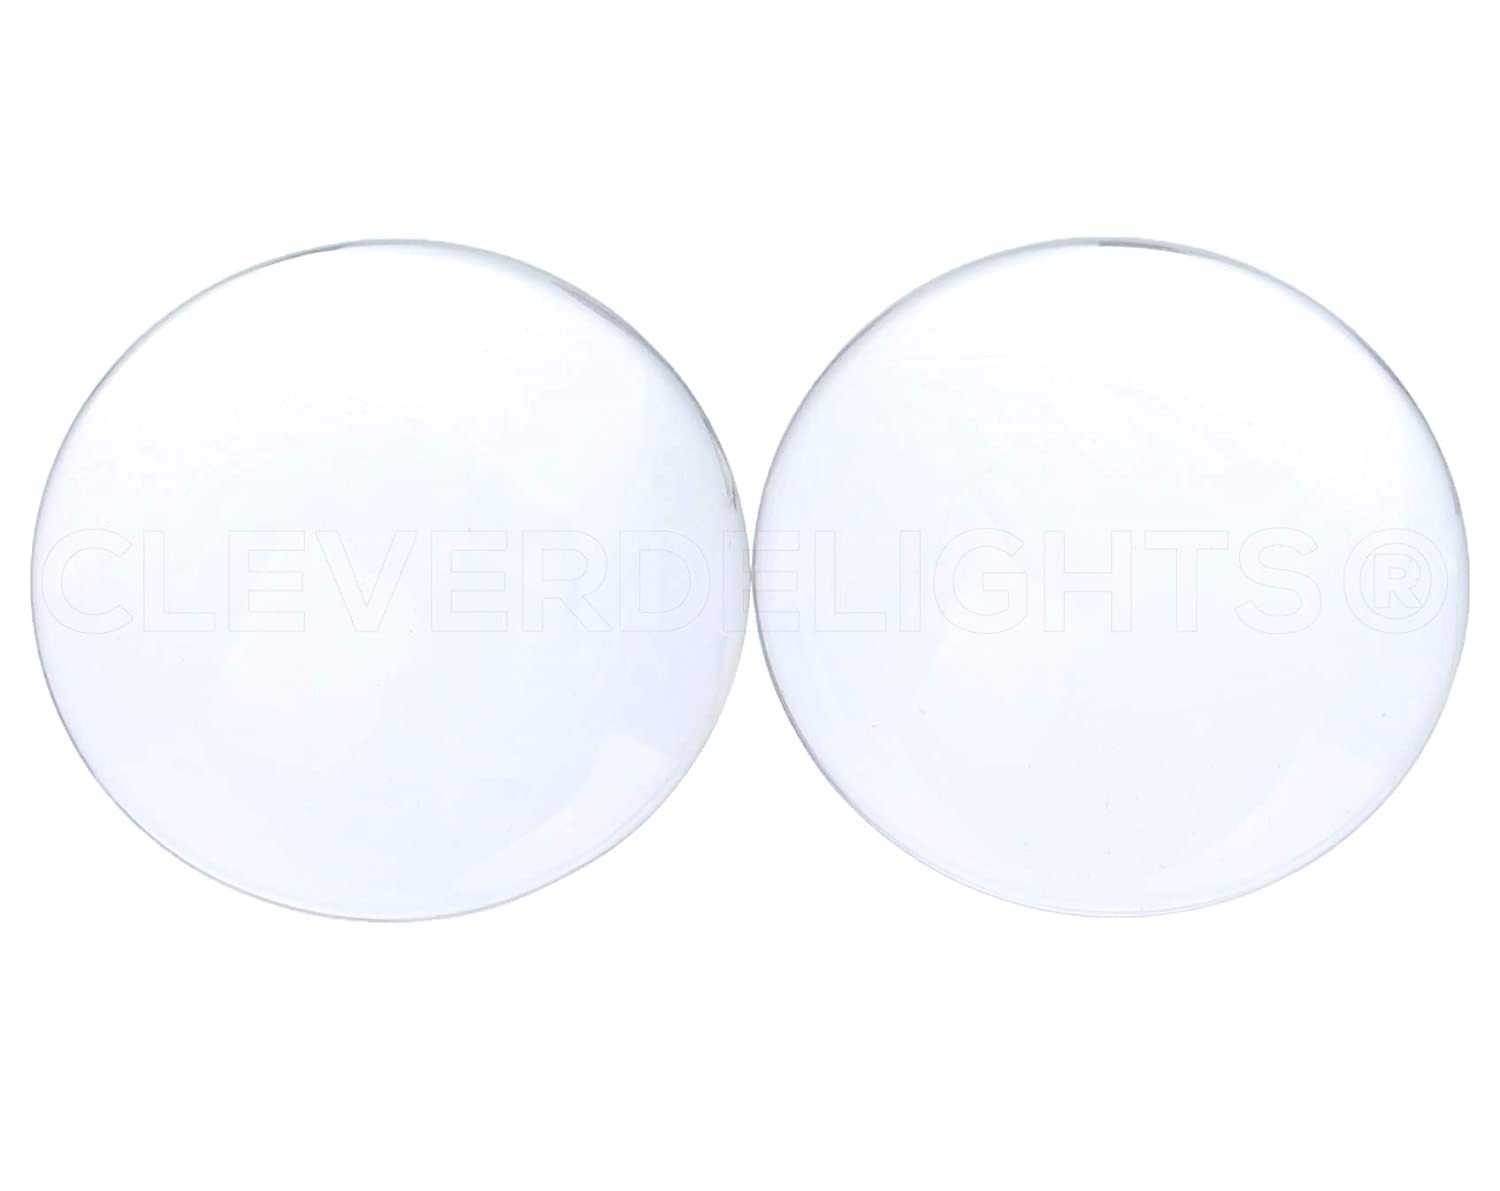 10 Pack - CleverDelights 3 Round Glass Cabochons - 5/8 Thick - Clear Magnifying Glass Dome Cabs 4336824189